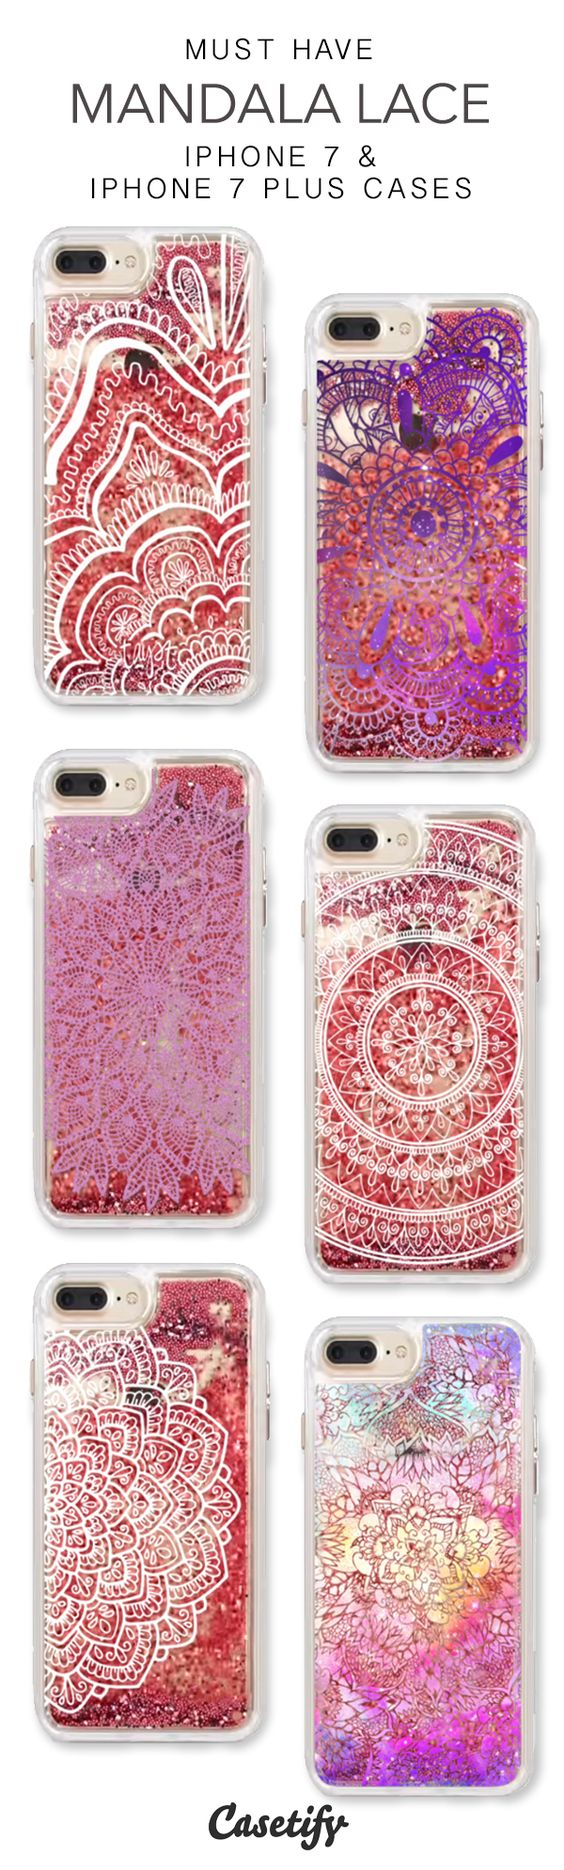 Must Have Mandala Lace iPhone 7 Cases & iPhone 7 Plus Cases. More liquid glitter iPhone case here > https://www.casetify.com/en_US/collections/iphone-7-glitter-cases#/?vc=KNDSHcWHPL: